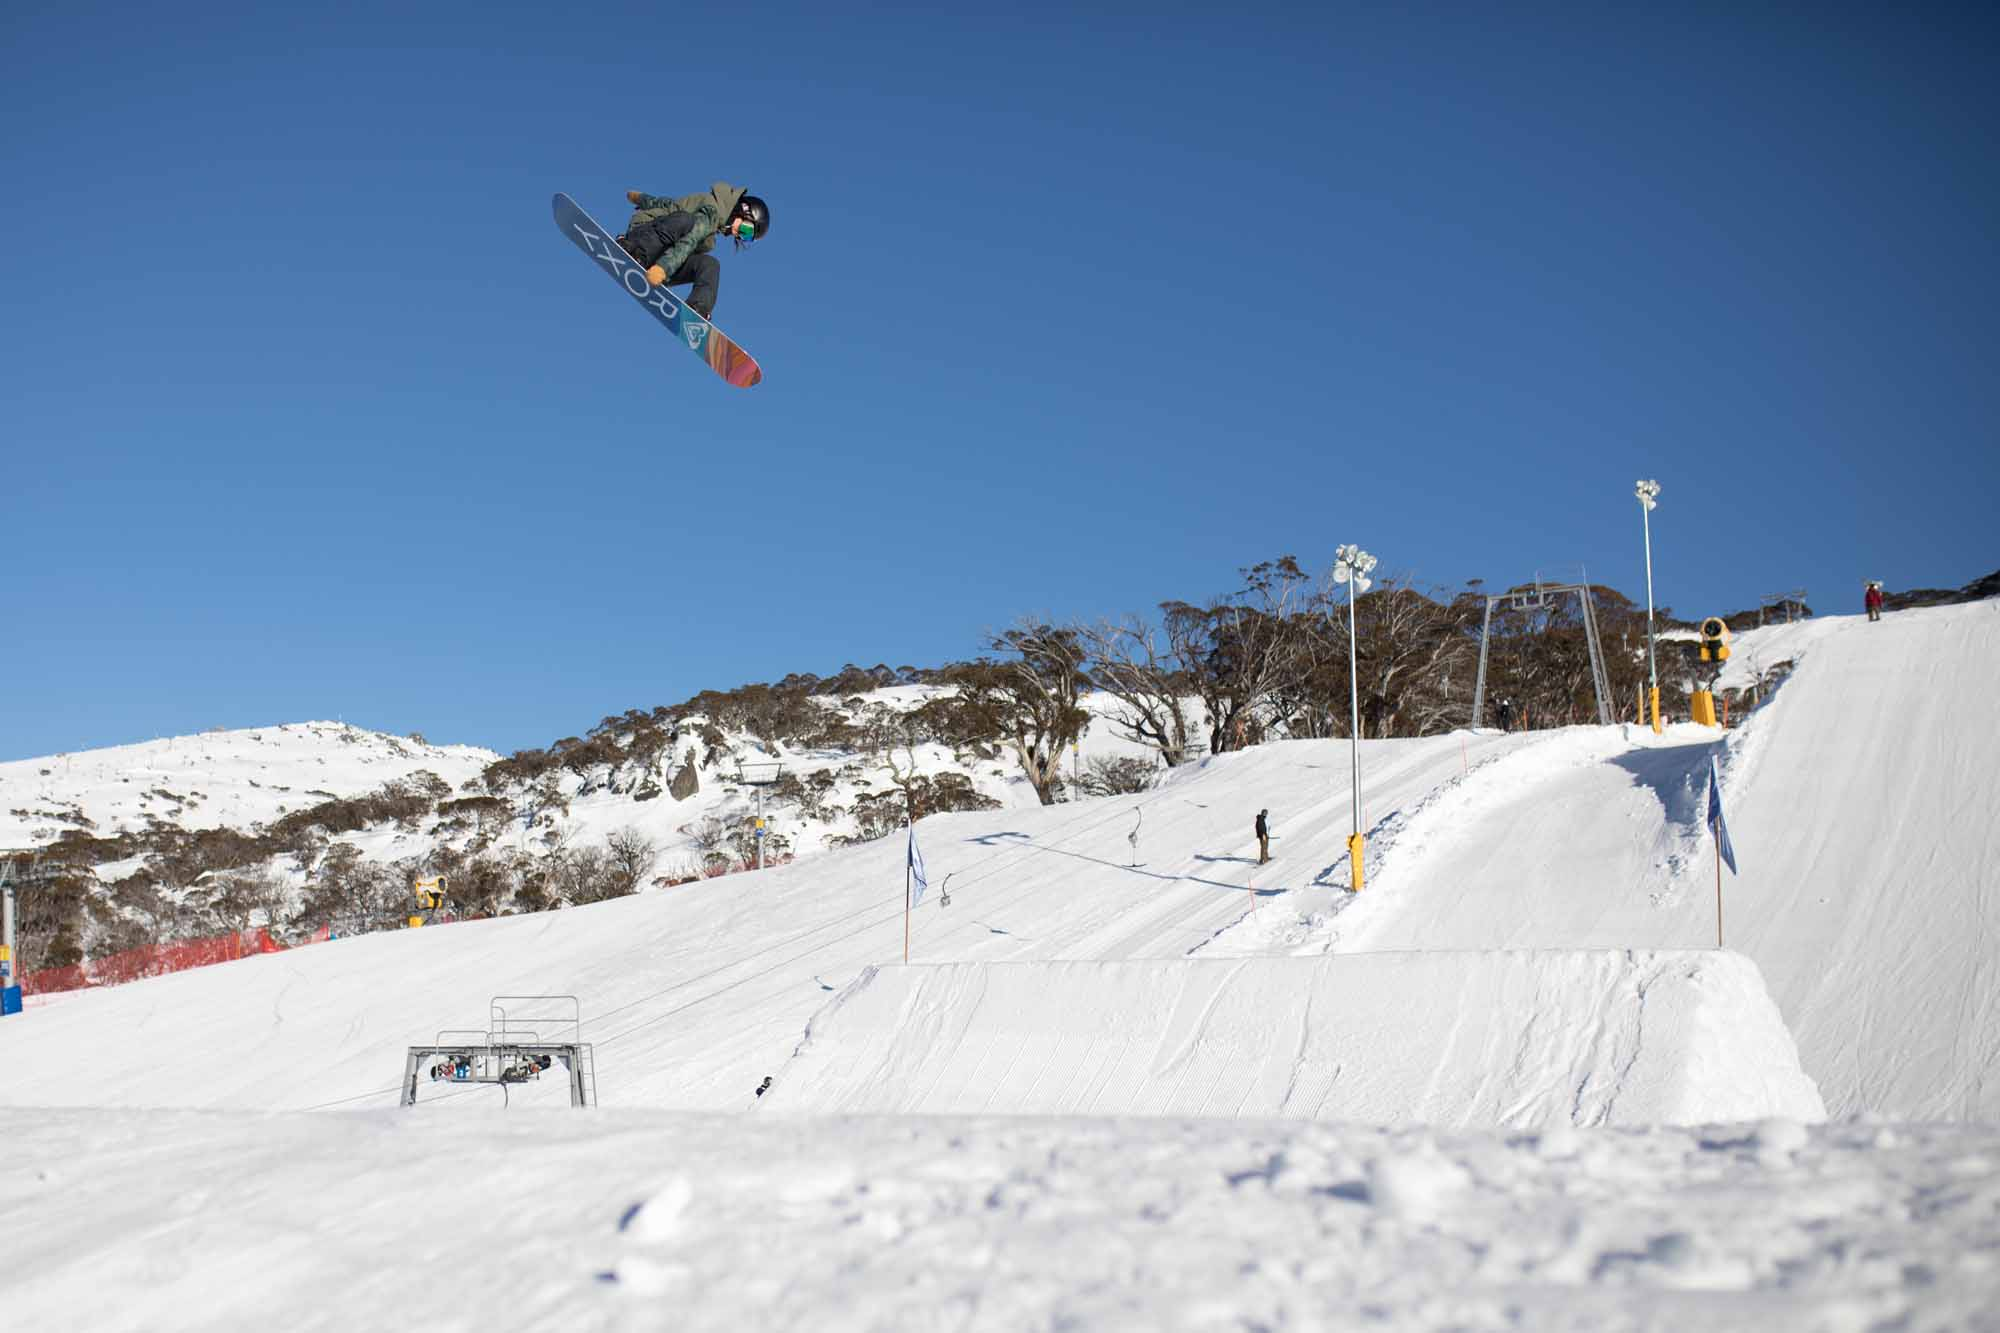 Patience-Progression-Catching-up-with-The-Senders-Baily-McDonald-photo-by-Chris-Witwicki